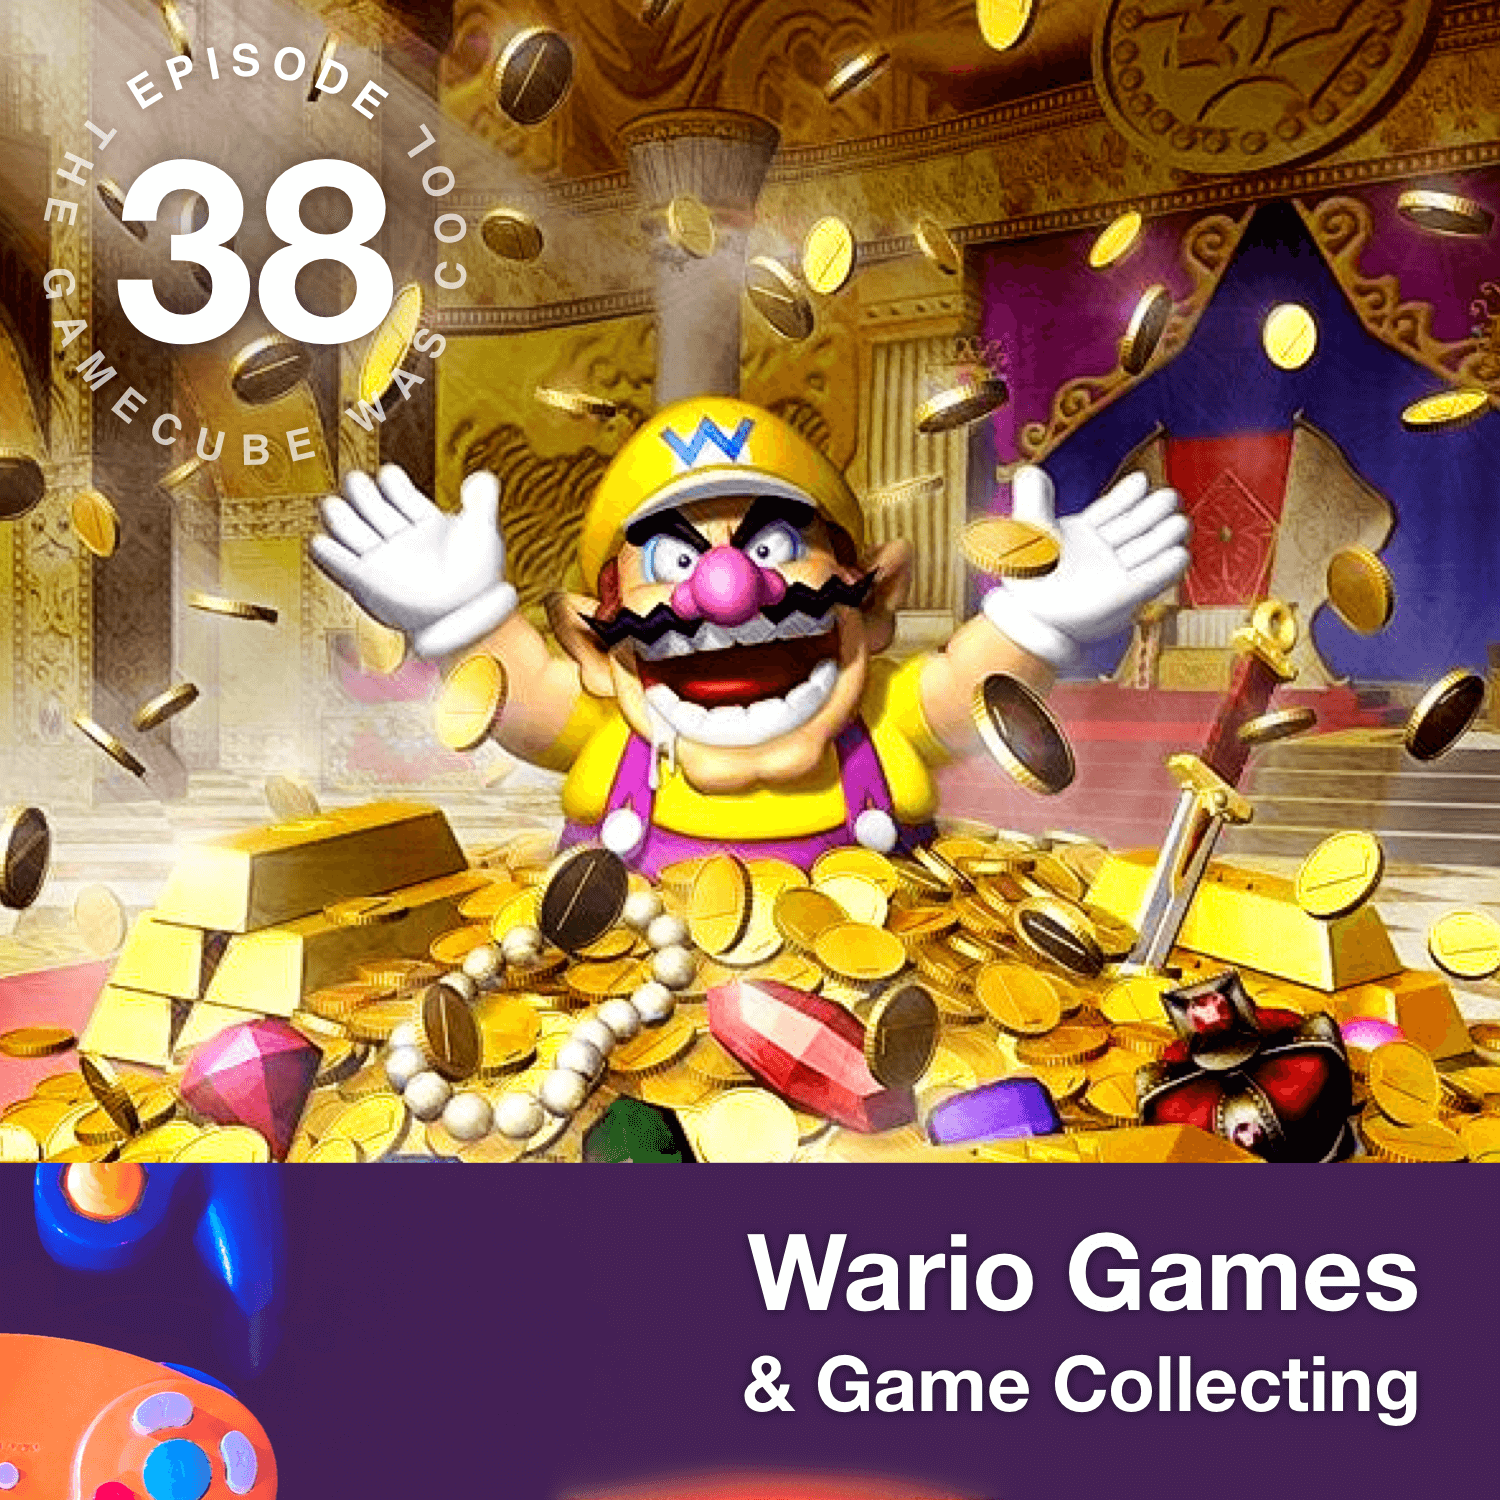 Wario Games & Game Collecting